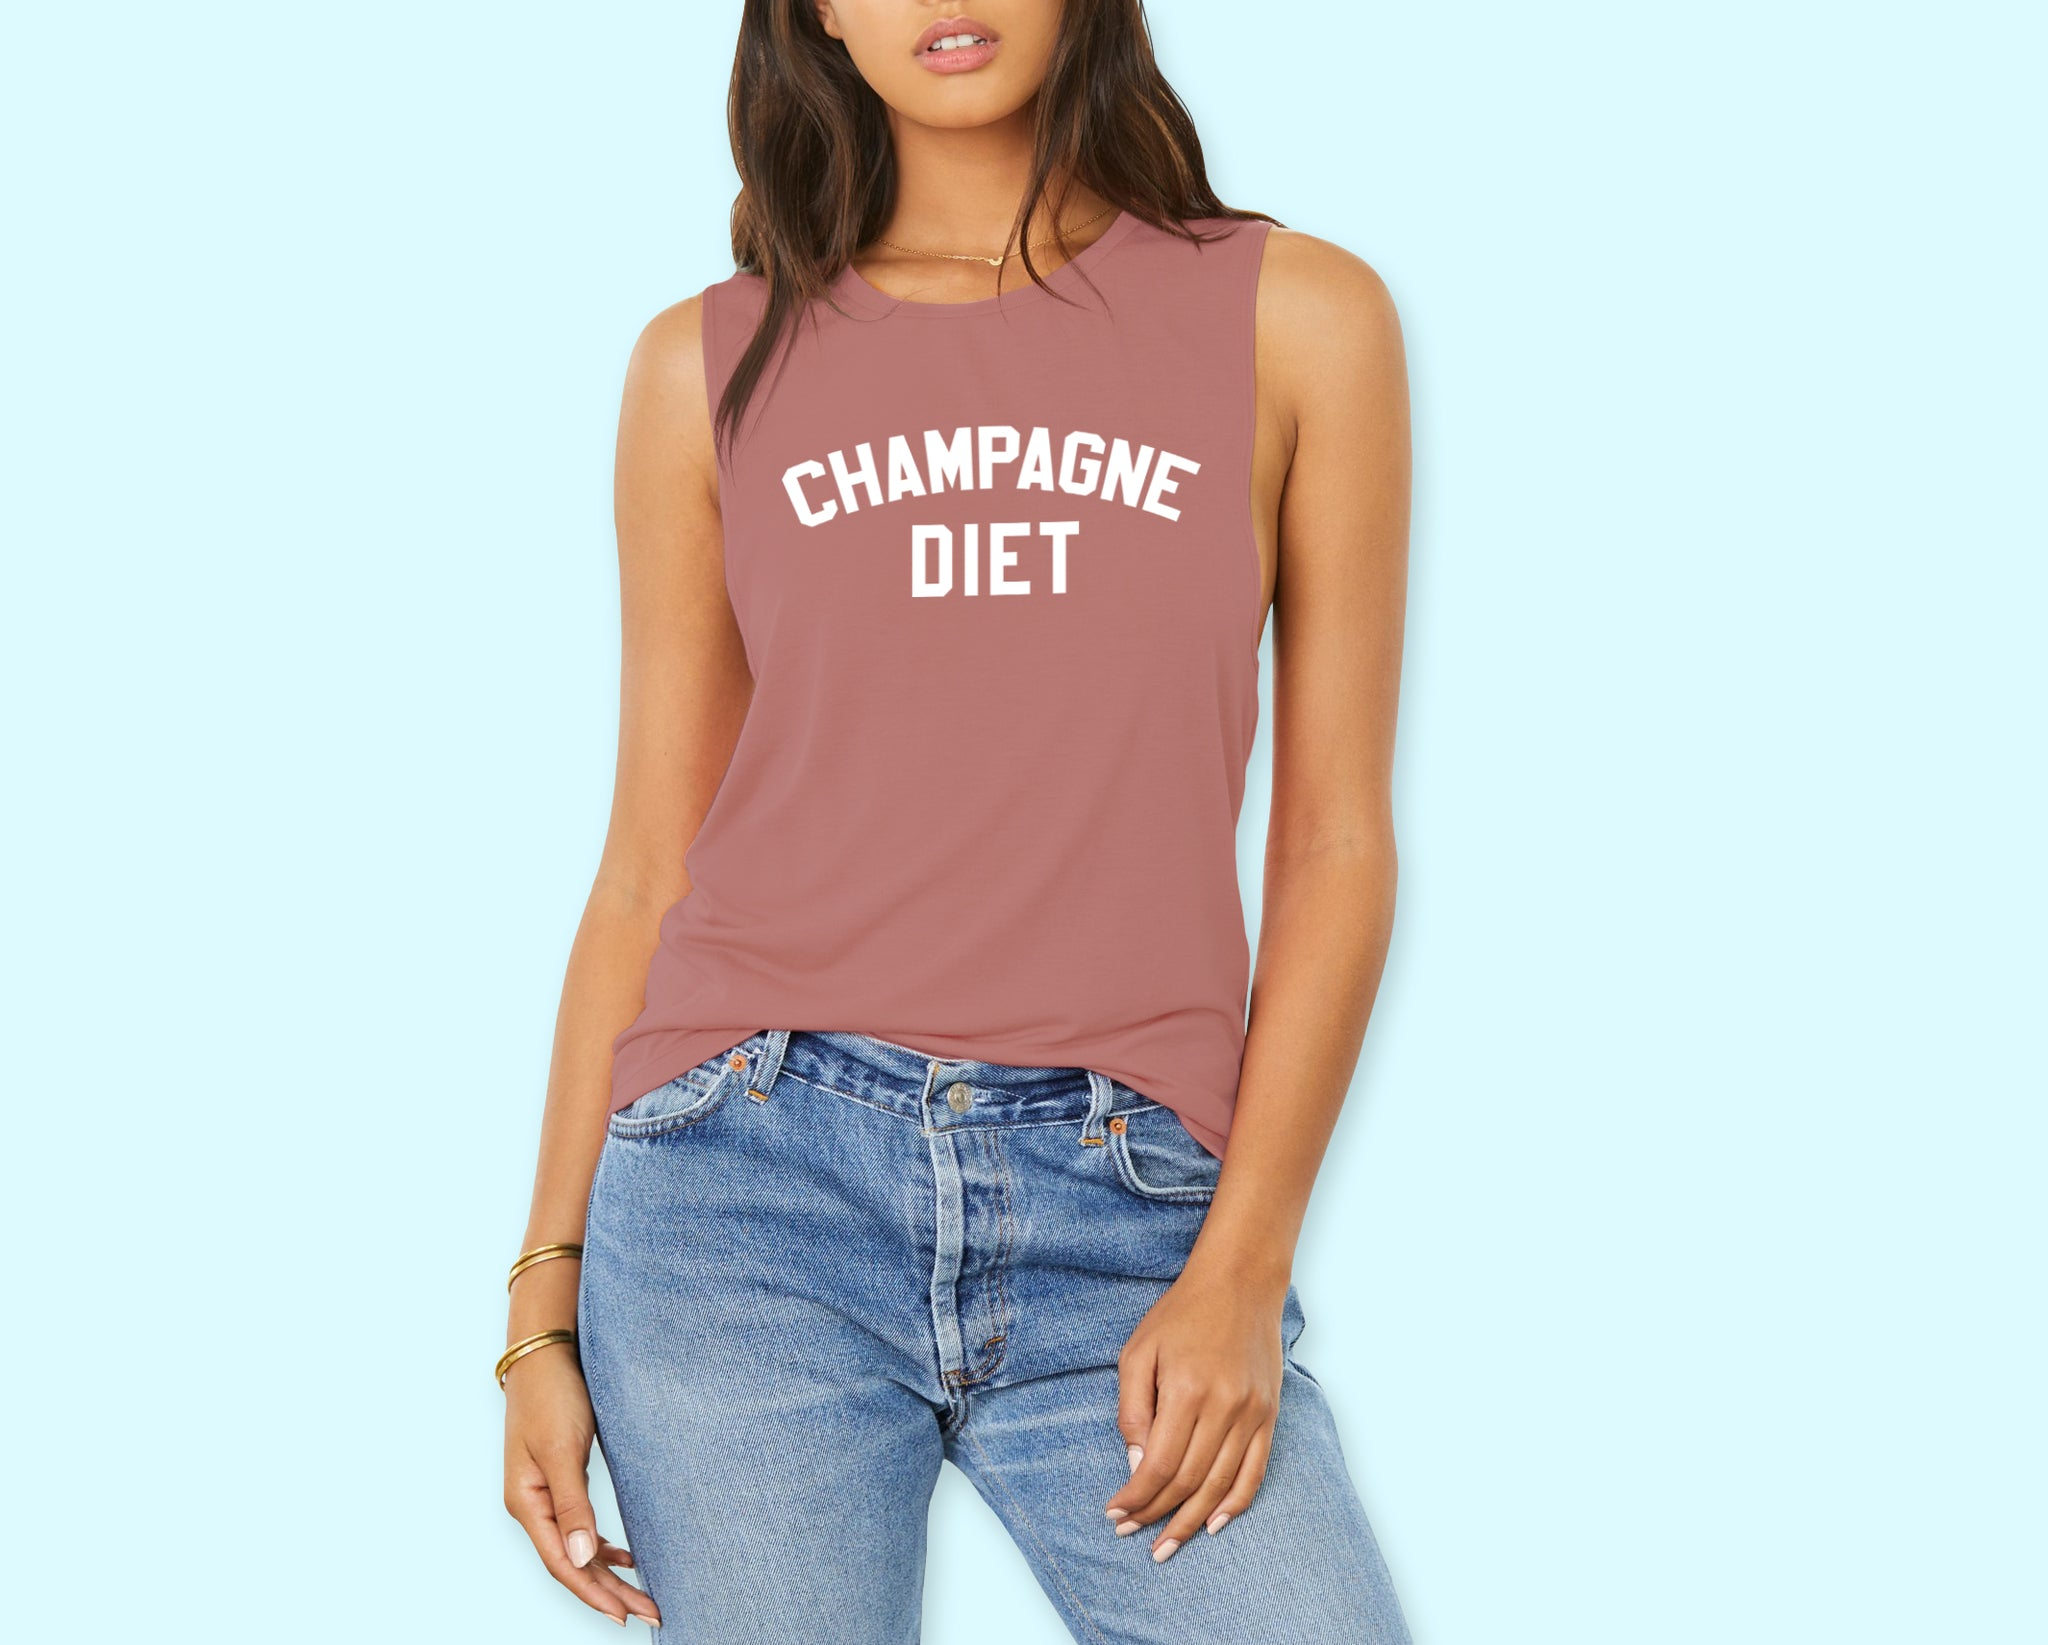 Champagne Diet Muscle Tank